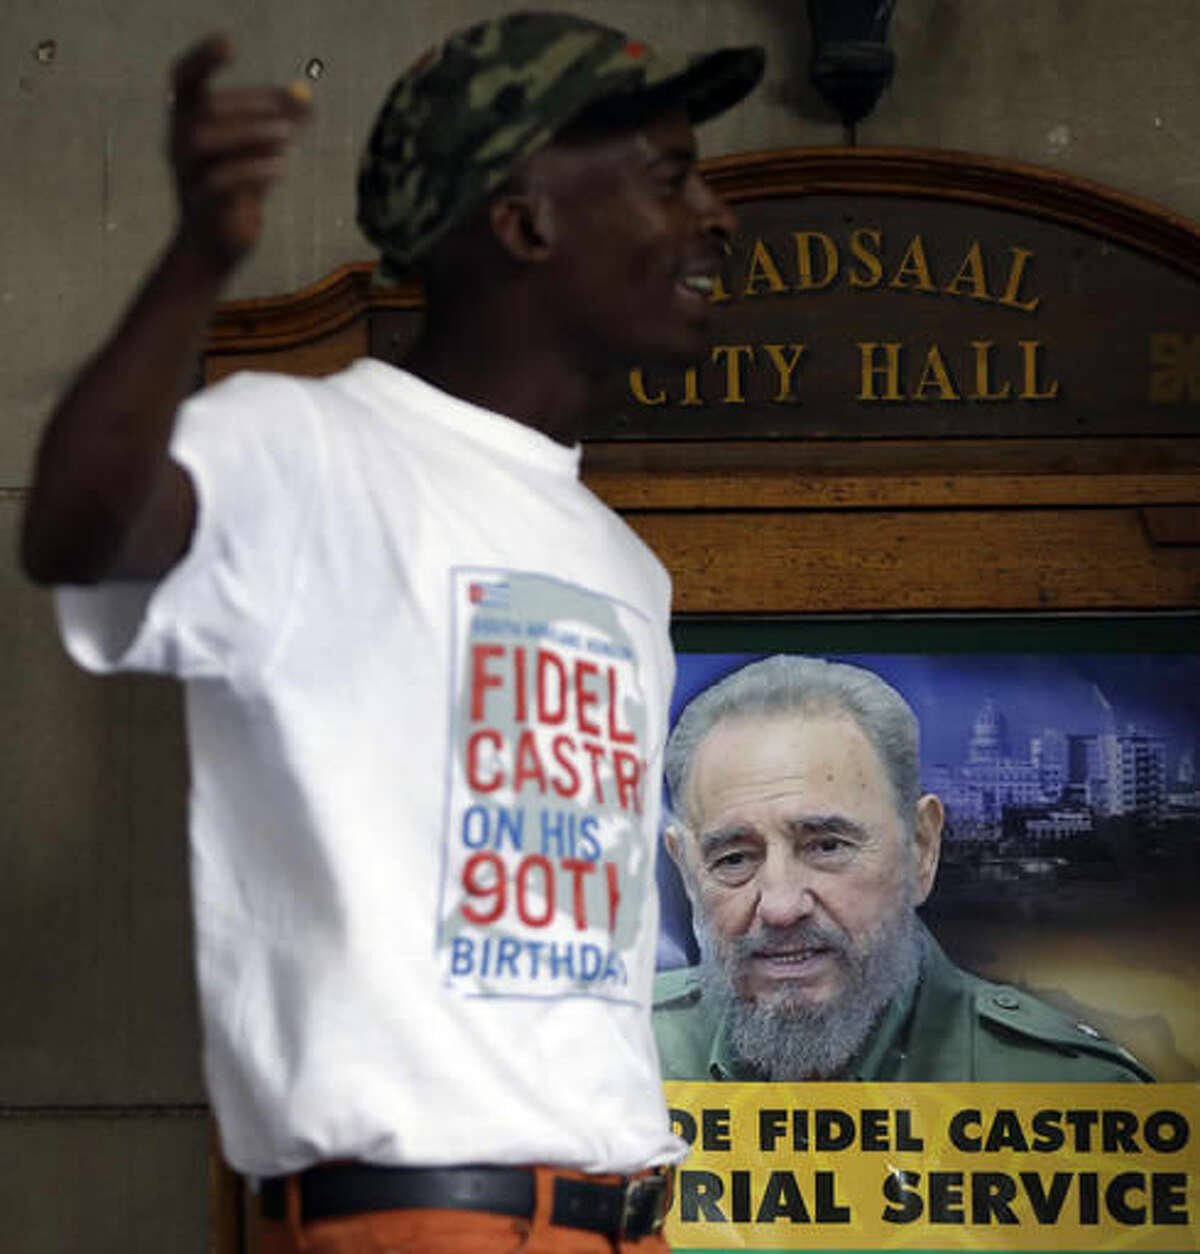 A man stands outside the venue hosting the memorial service for the late Cuban revolutionary leader Fidel Castro in Johannesburg, South AfricaWednesday, Nov. 30, 2016. Castro, who led a rebel army to improbable victory, embraced Soviet-style communism and defied the power of 10 U.S. presidents during his half century rule of Cuba, died Friday at age 90. (AP Photo/Themba Hadebe)